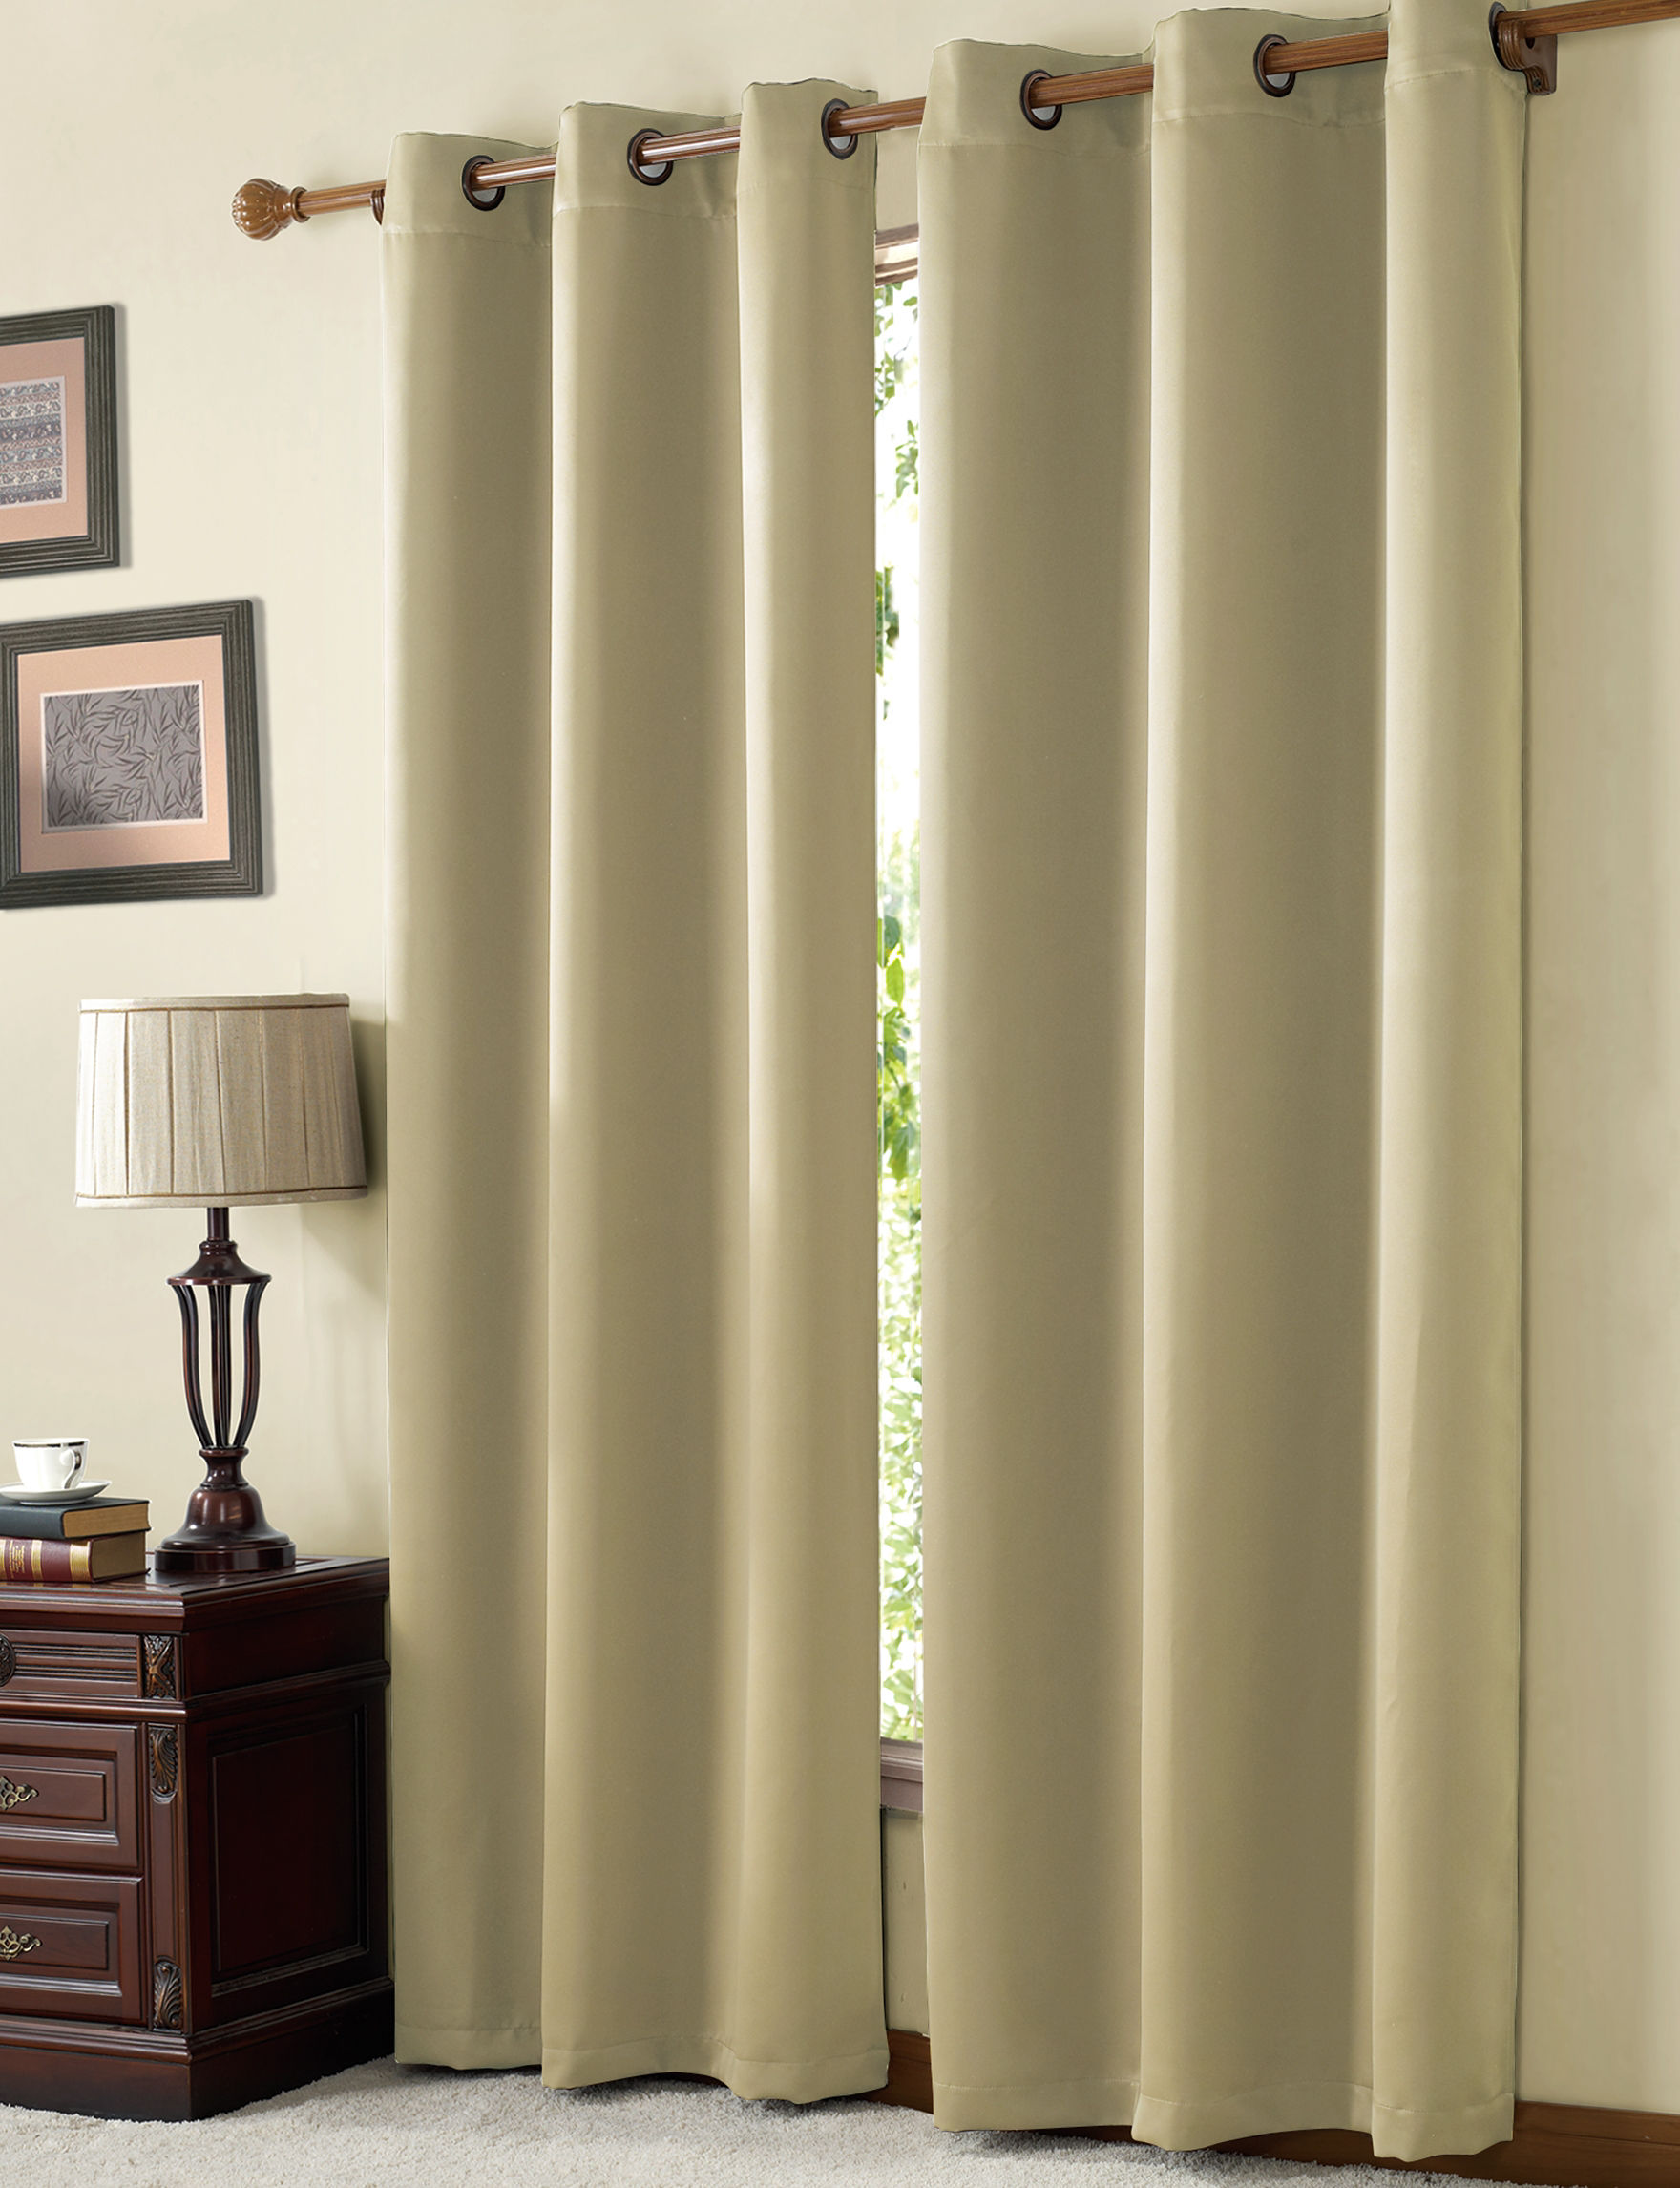 Victoria Classics Natural Curtains & Drapes Window Treatments